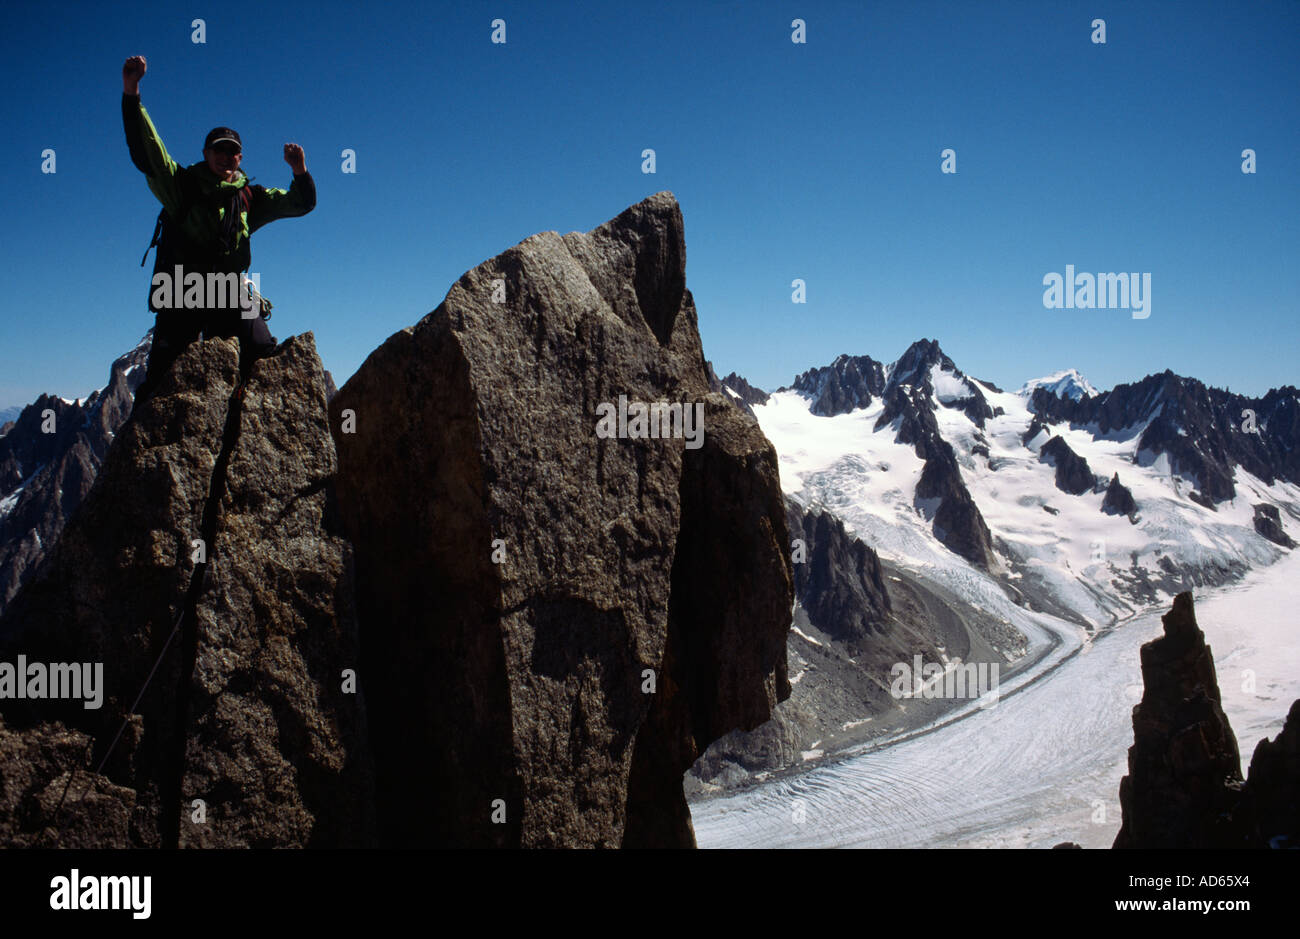 PICTURE CREDIT DOUG BLANE Richard Boud Mountaineering in Chamonix France Stock Photo